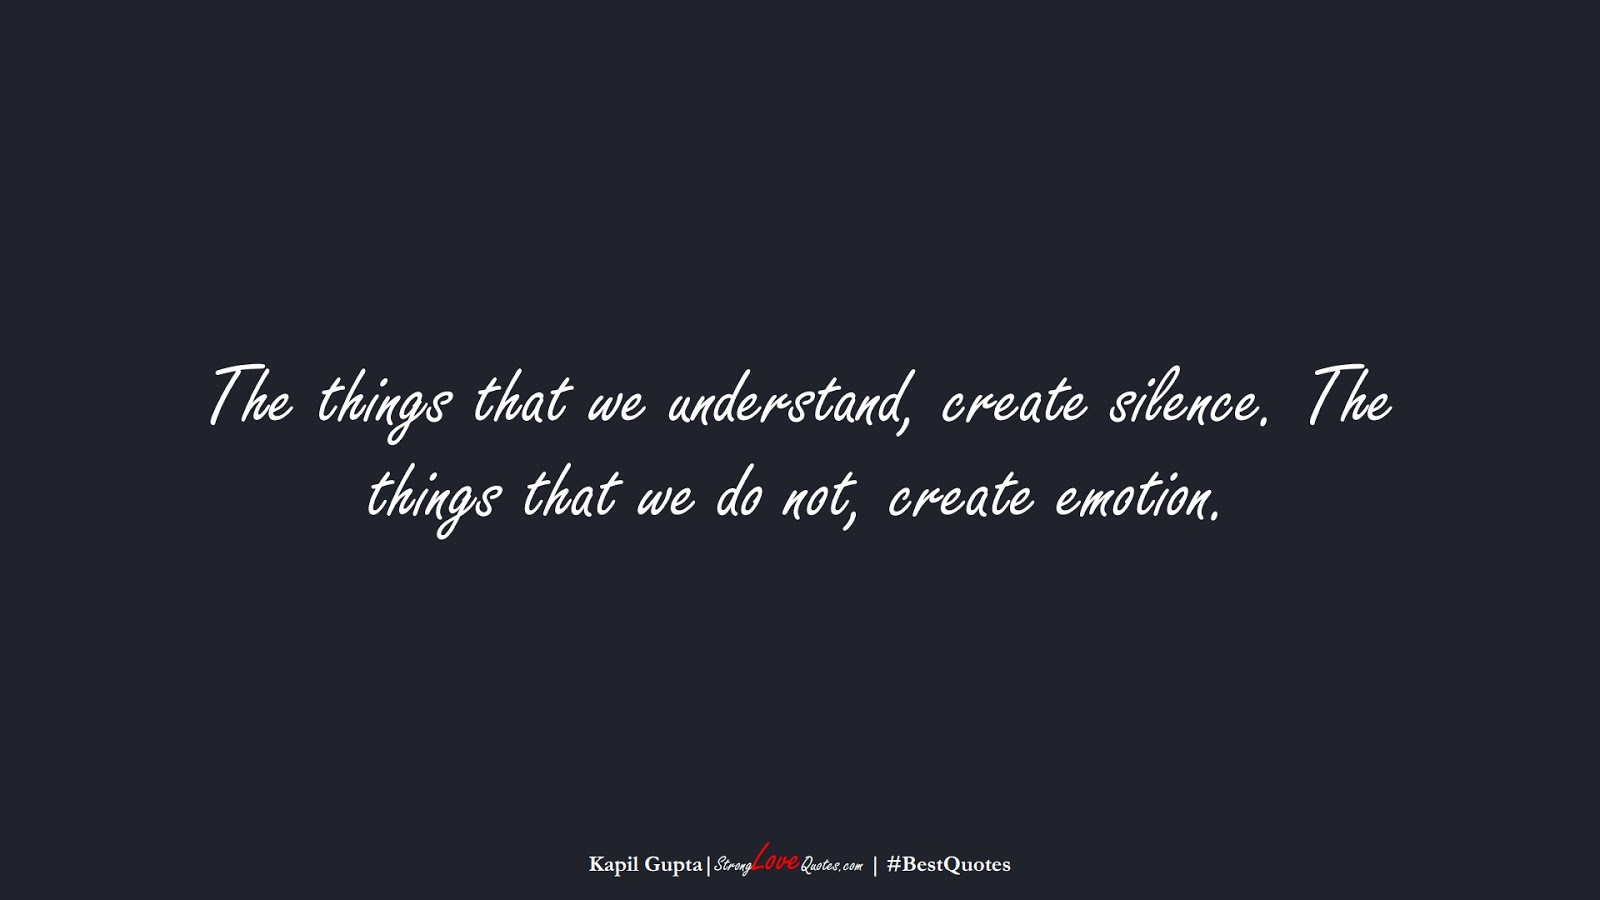 The things that we understand, create silence. The things that we do not, create emotion. (Kapil Gupta);  #BestQuotes